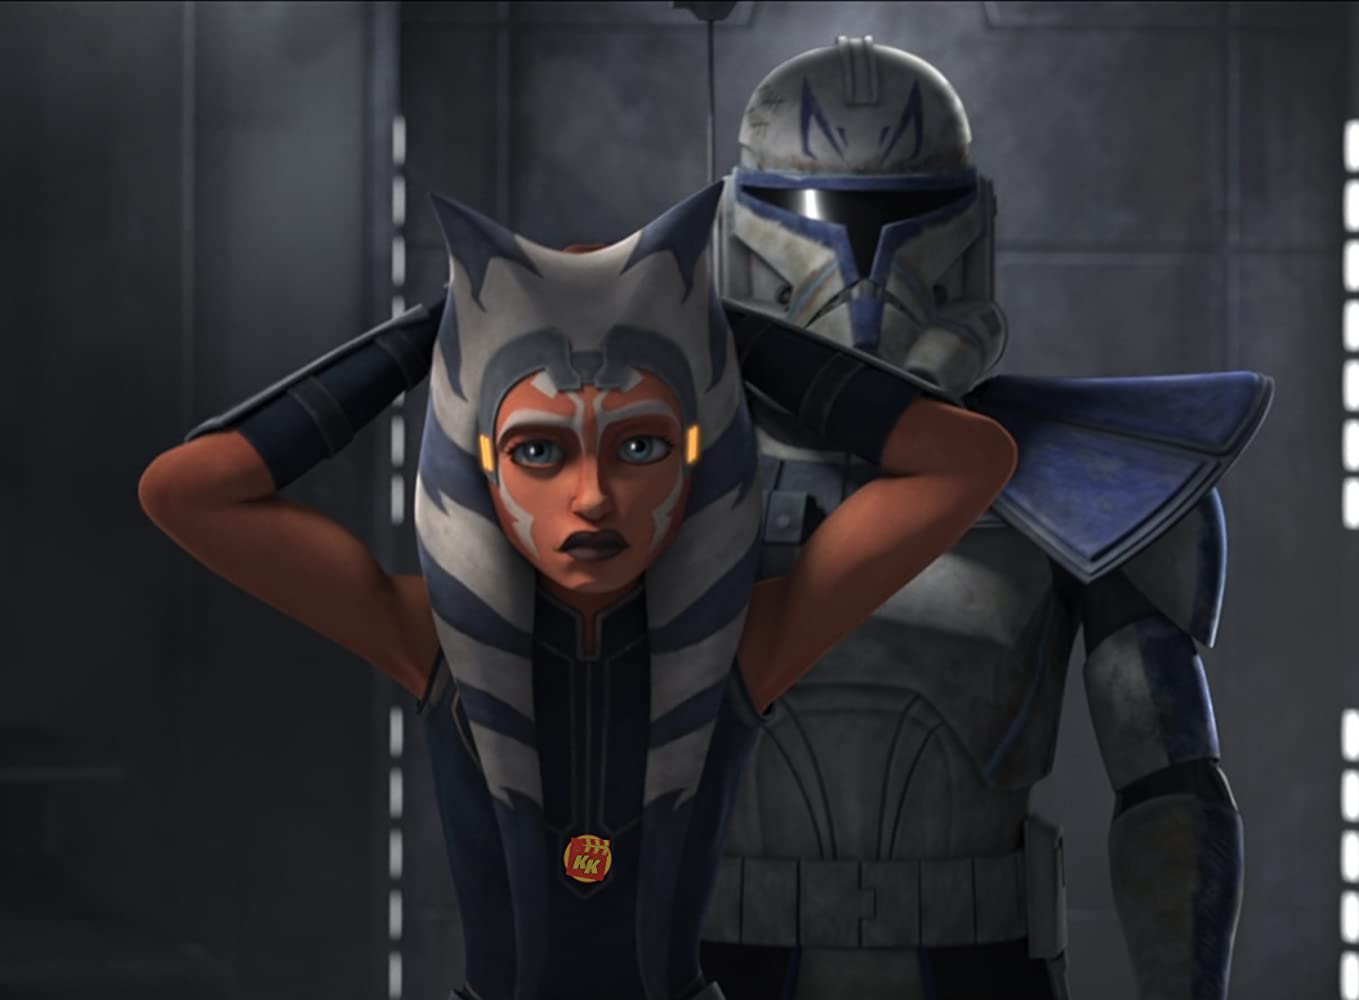 Sneak Peek Victory And Death The End Of The Clone Wars